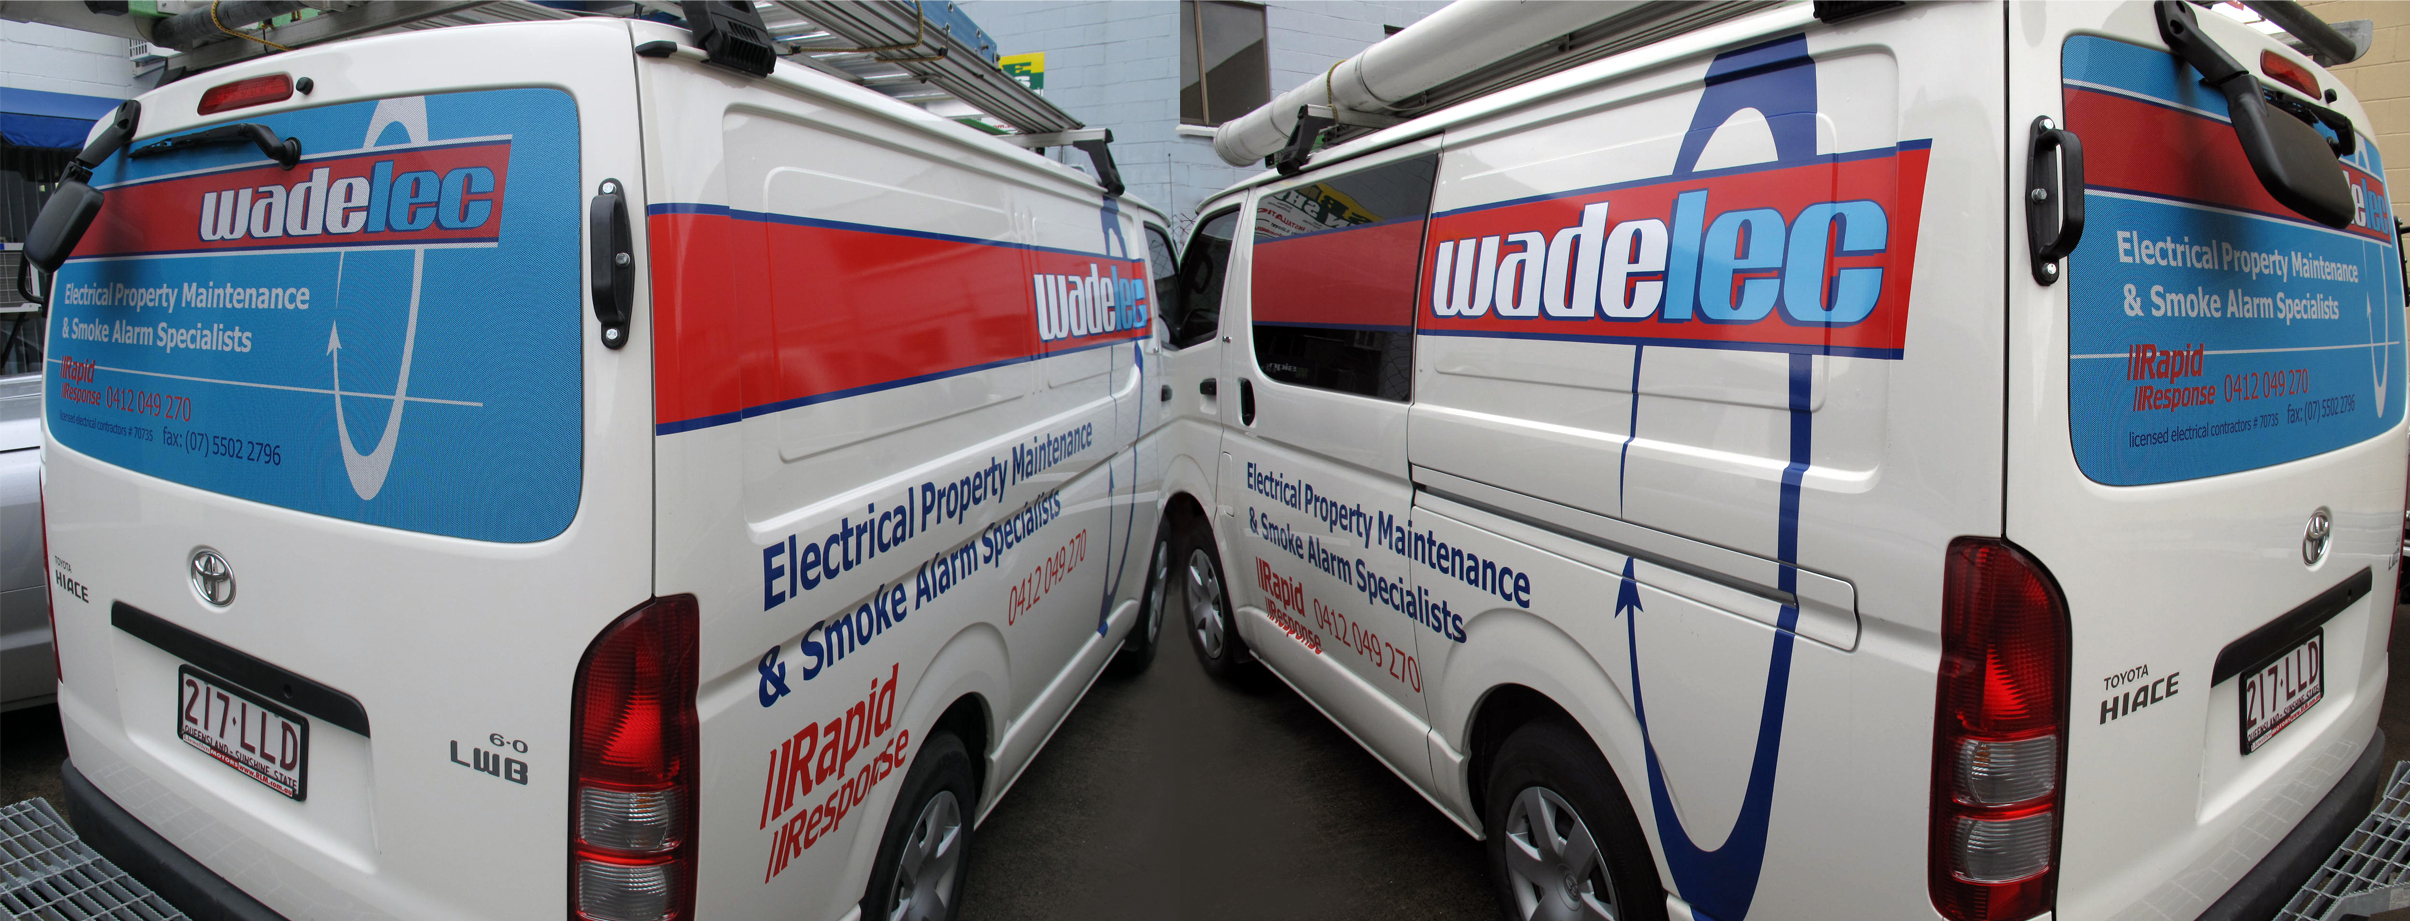 Wade Electrical Van